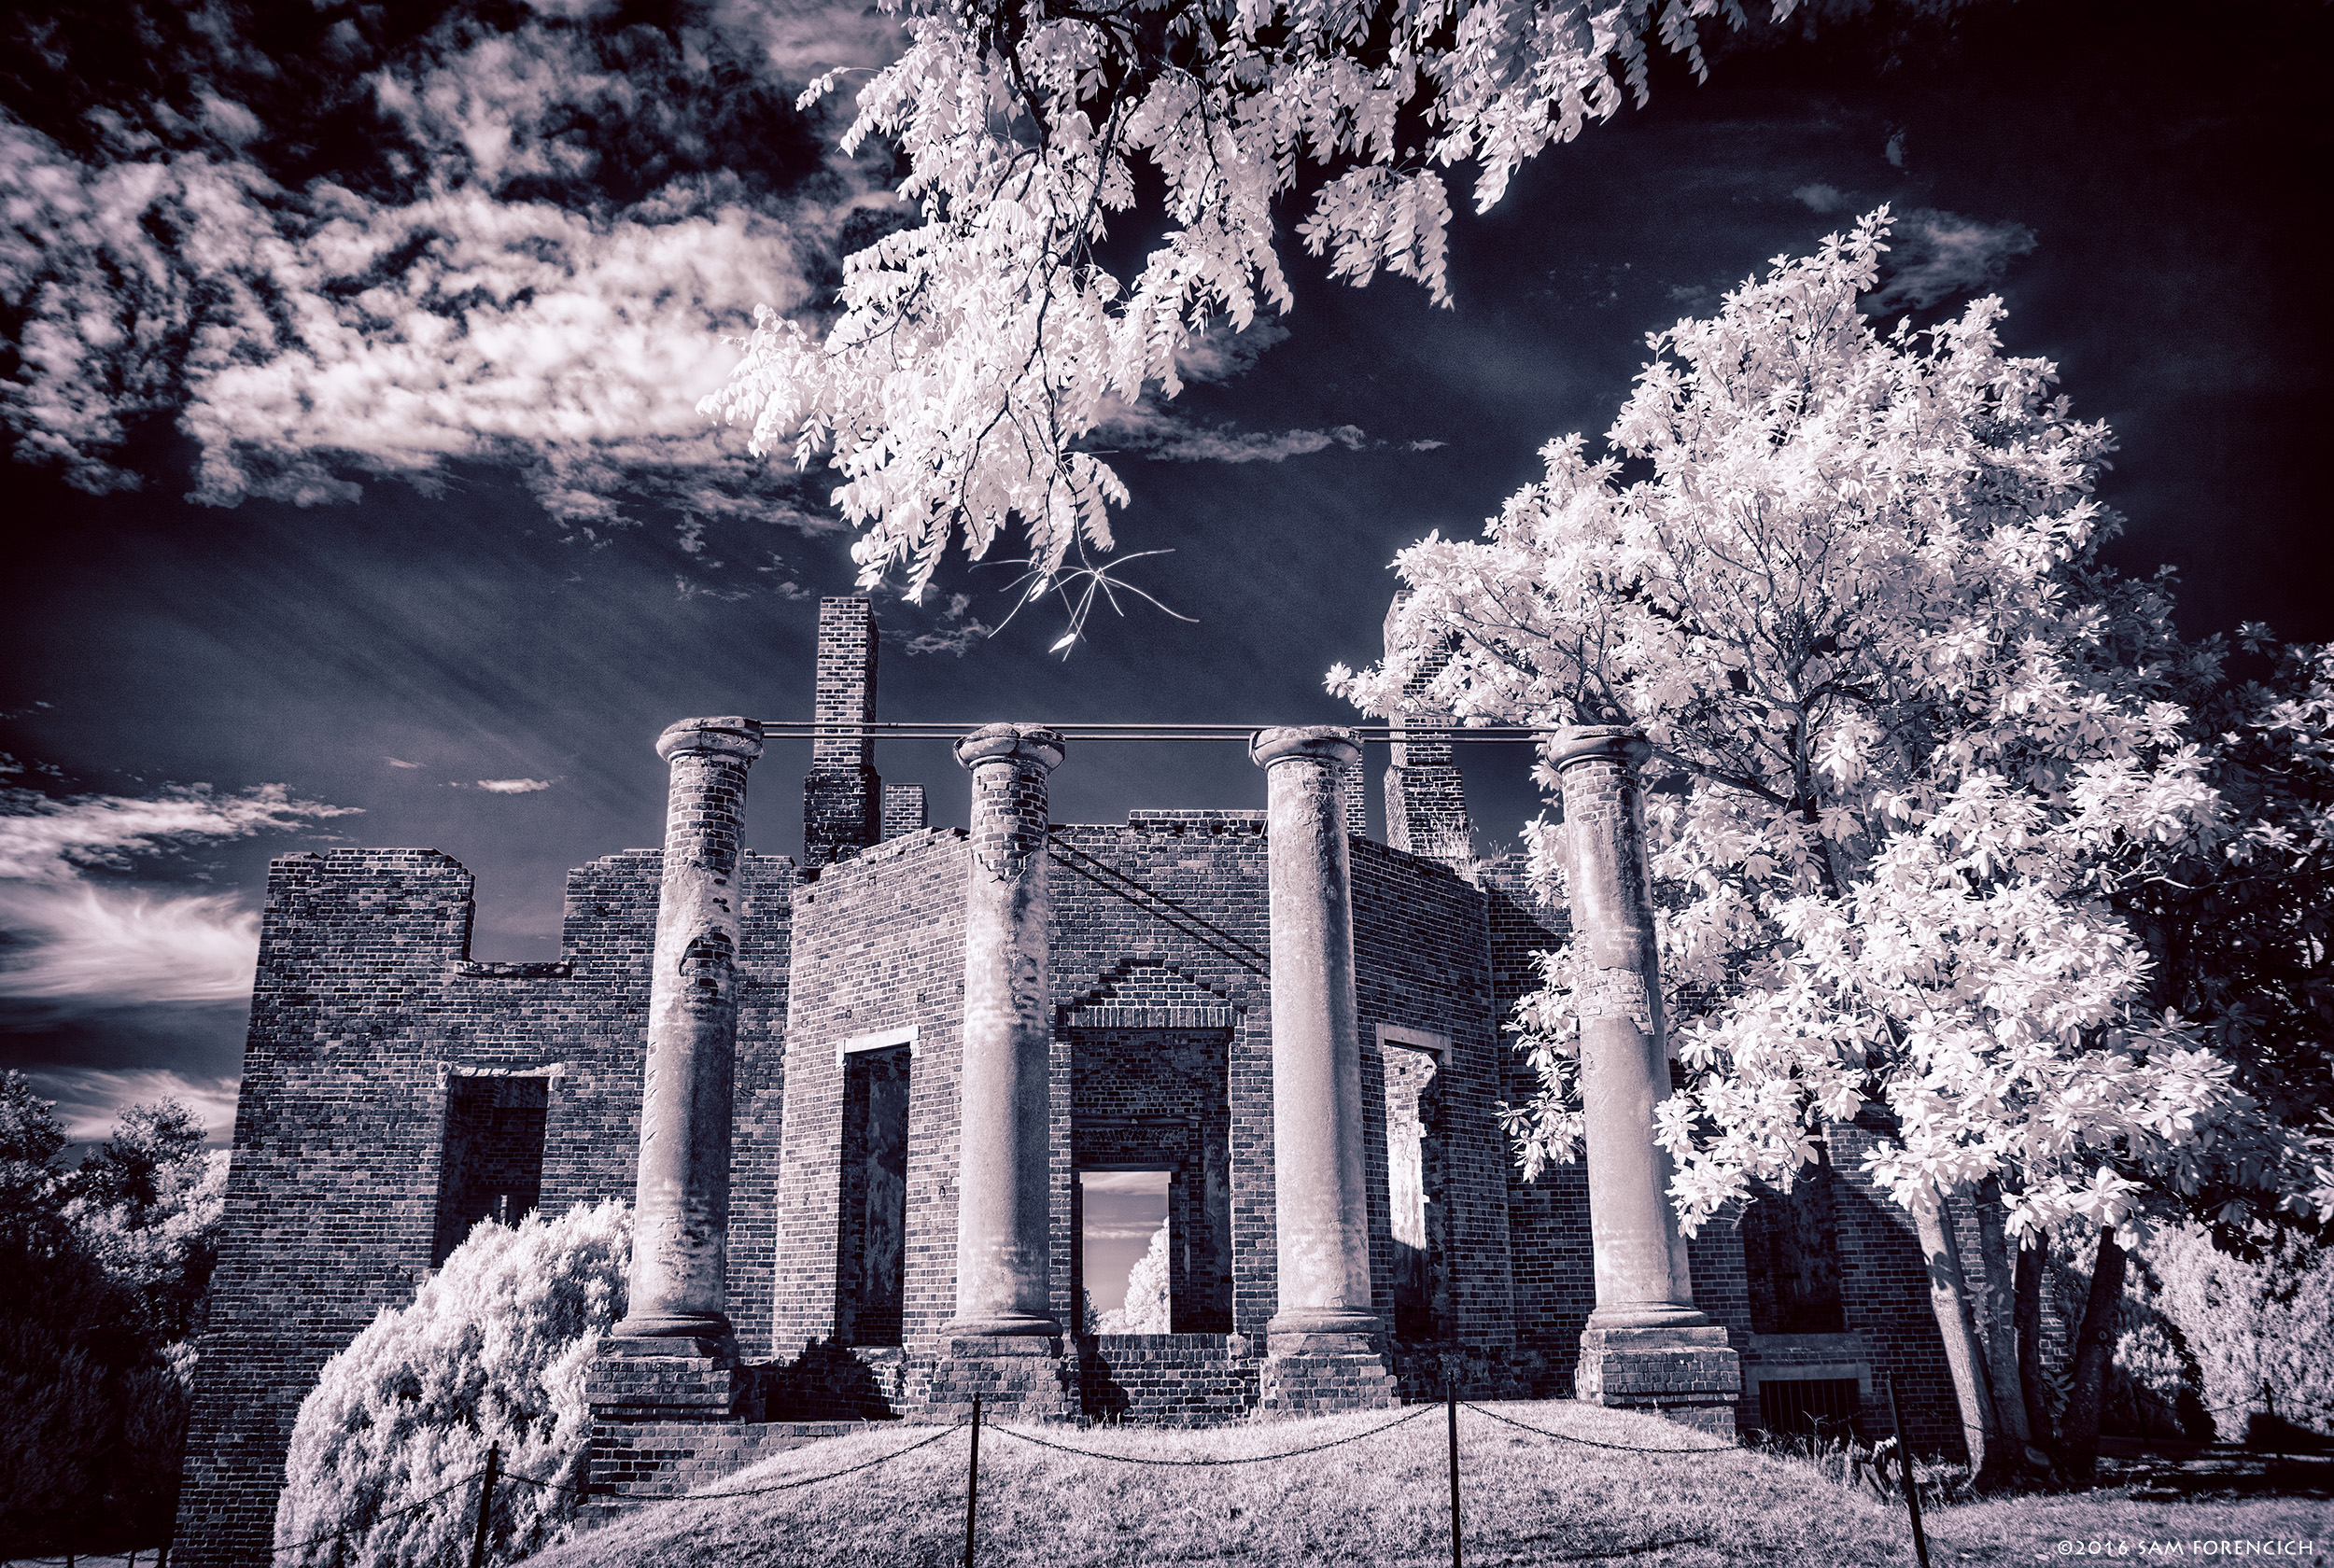 The brick columns and shell of the Barboursville Ruins in Orange County, Virginia are all that remain of the home of former Virginia Governor James Barbour. The home, designed by Thomas Jefferson, was built in 1822 and gutted by a Christmas day fire in 1884. IR converted Nikon D750, HDR post processing.  © 2016 Sam Forencich